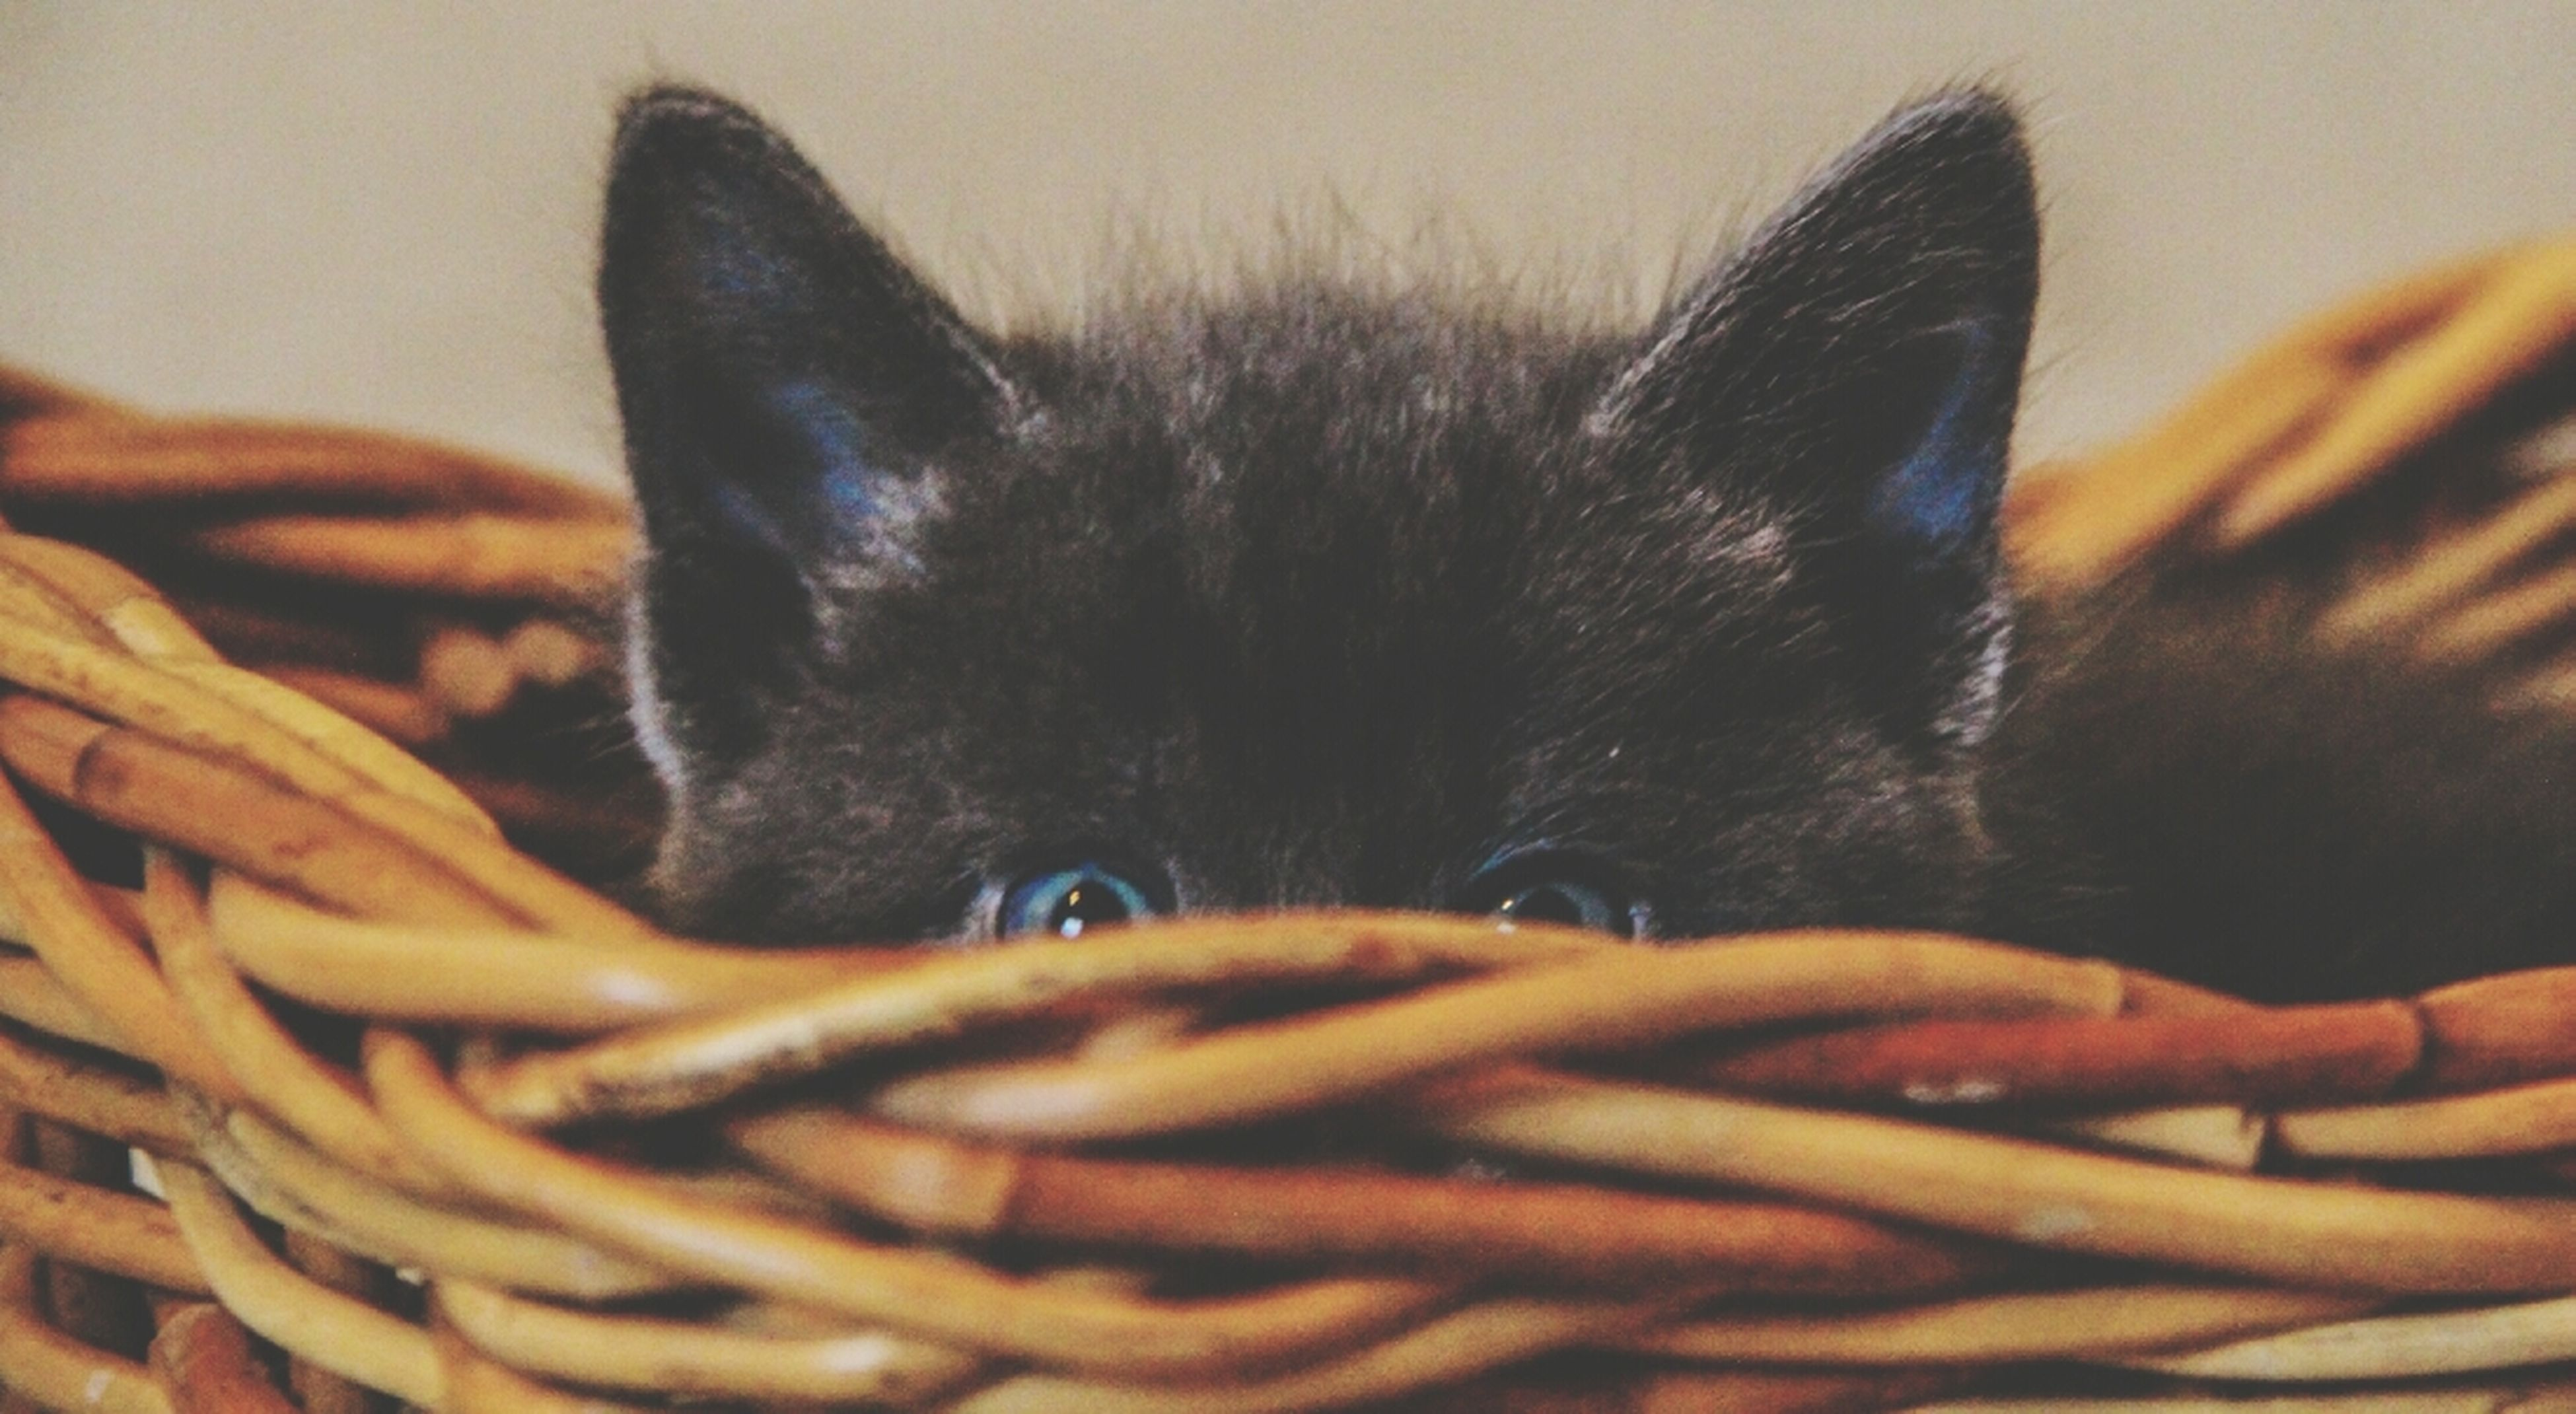 indoors, animal themes, one animal, domestic animals, close-up, pets, mammal, domestic cat, animal body part, relaxation, part of, focus on foreground, bed, animal head, cat, resting, home interior, no people, whisker, black color